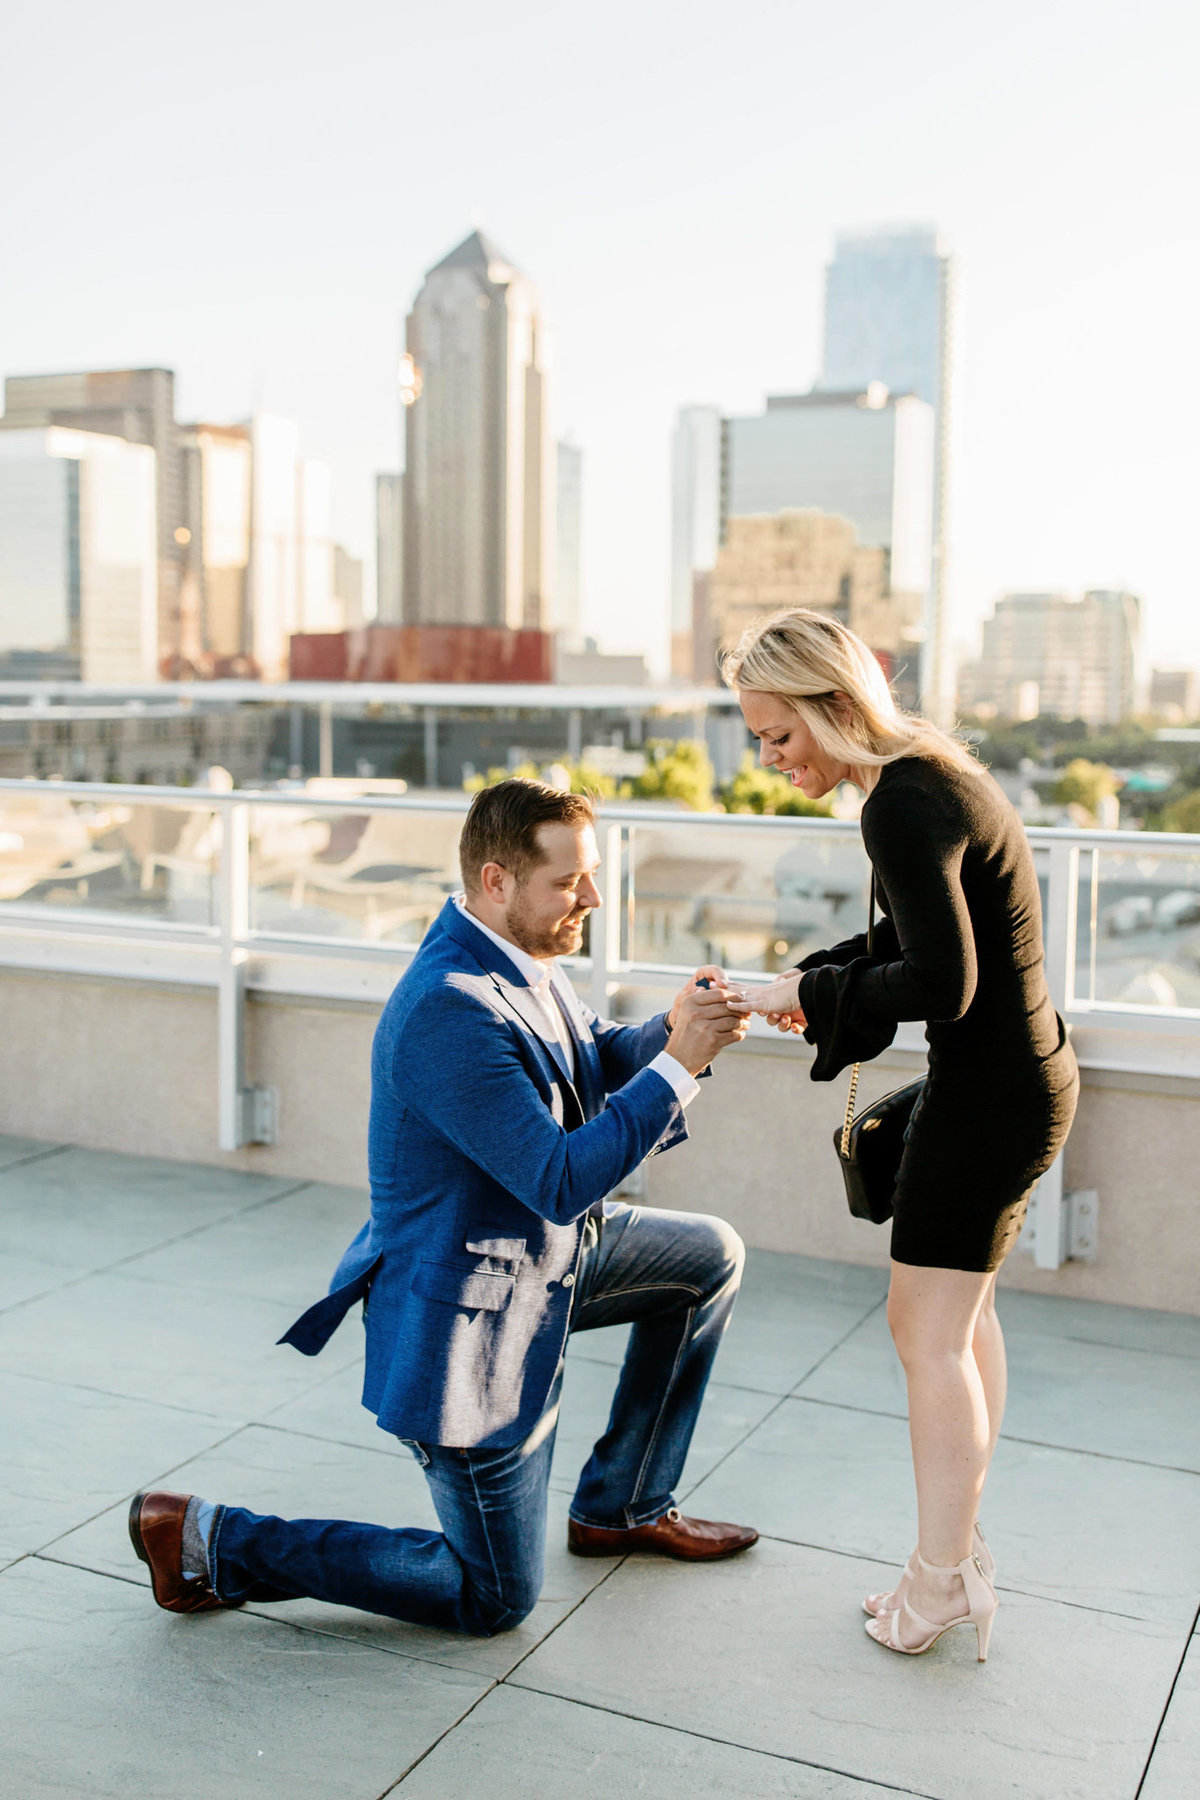 Eric & Megan - Downtown Dallas Rooftop Proposal & Engagement Session-38